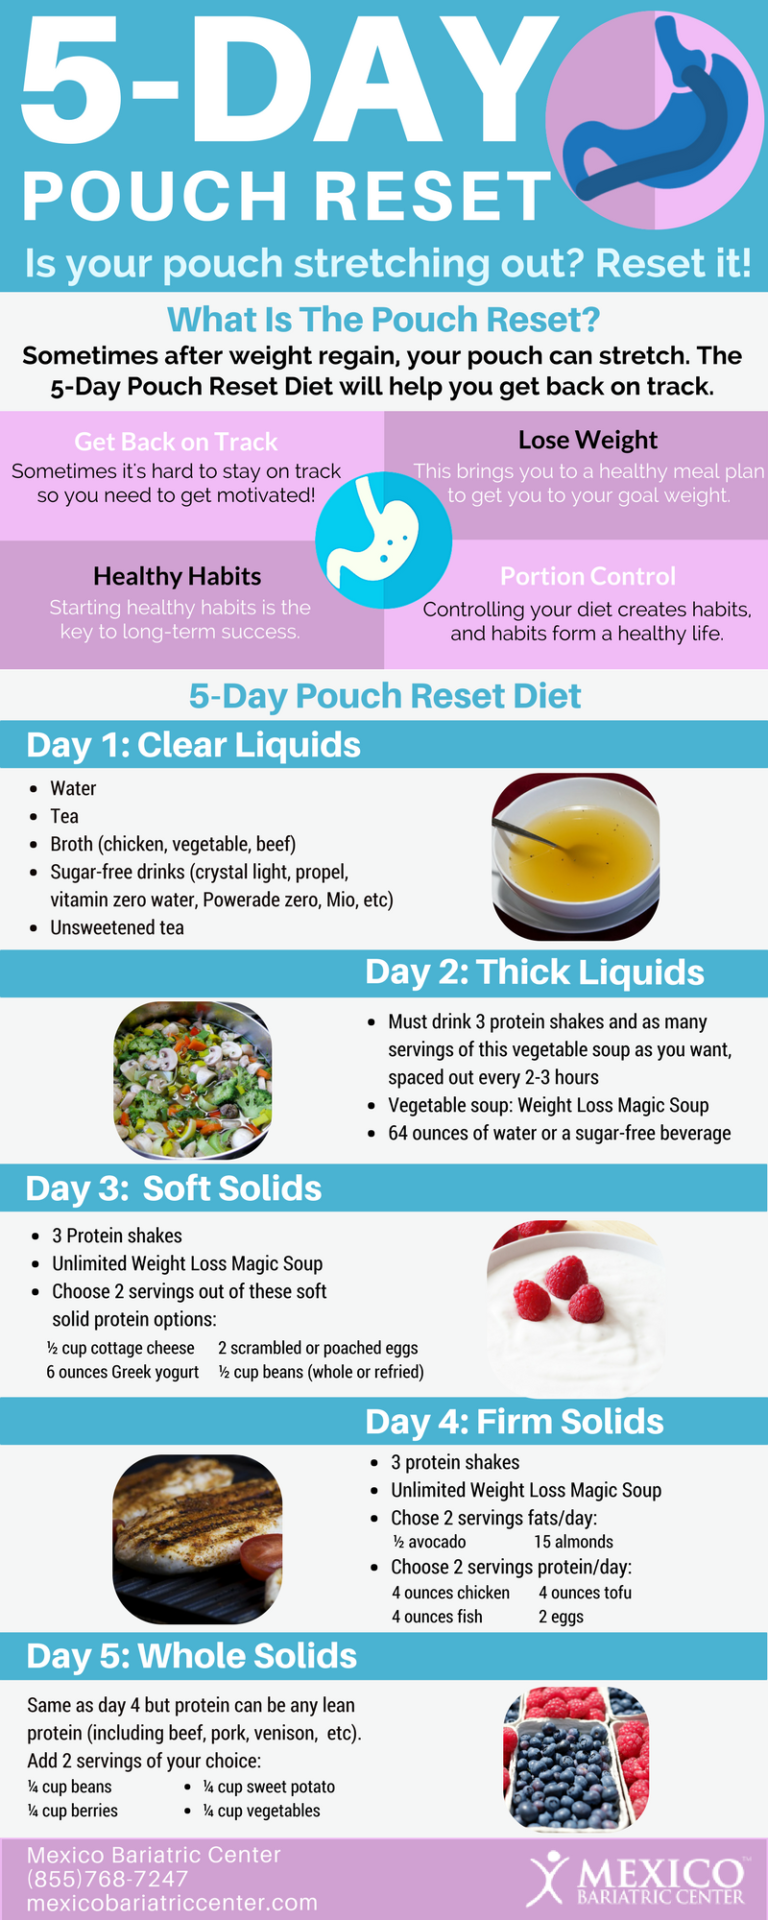 5 Day Pouch Reset Diet Infographic Adulting Pinterest Pouch